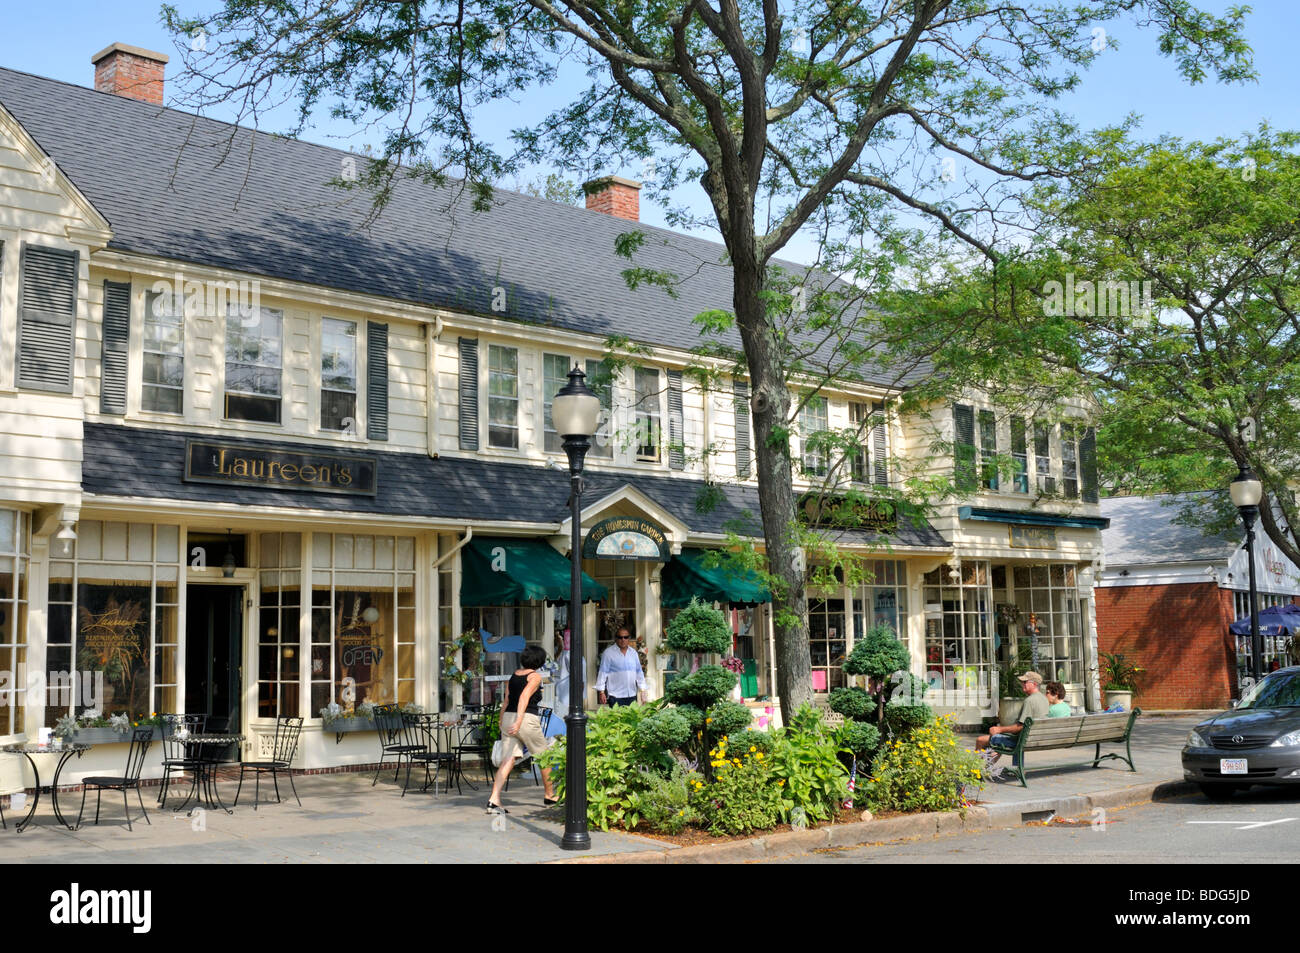 Downtown Falmouth Village, Cape Cod, With Shops And